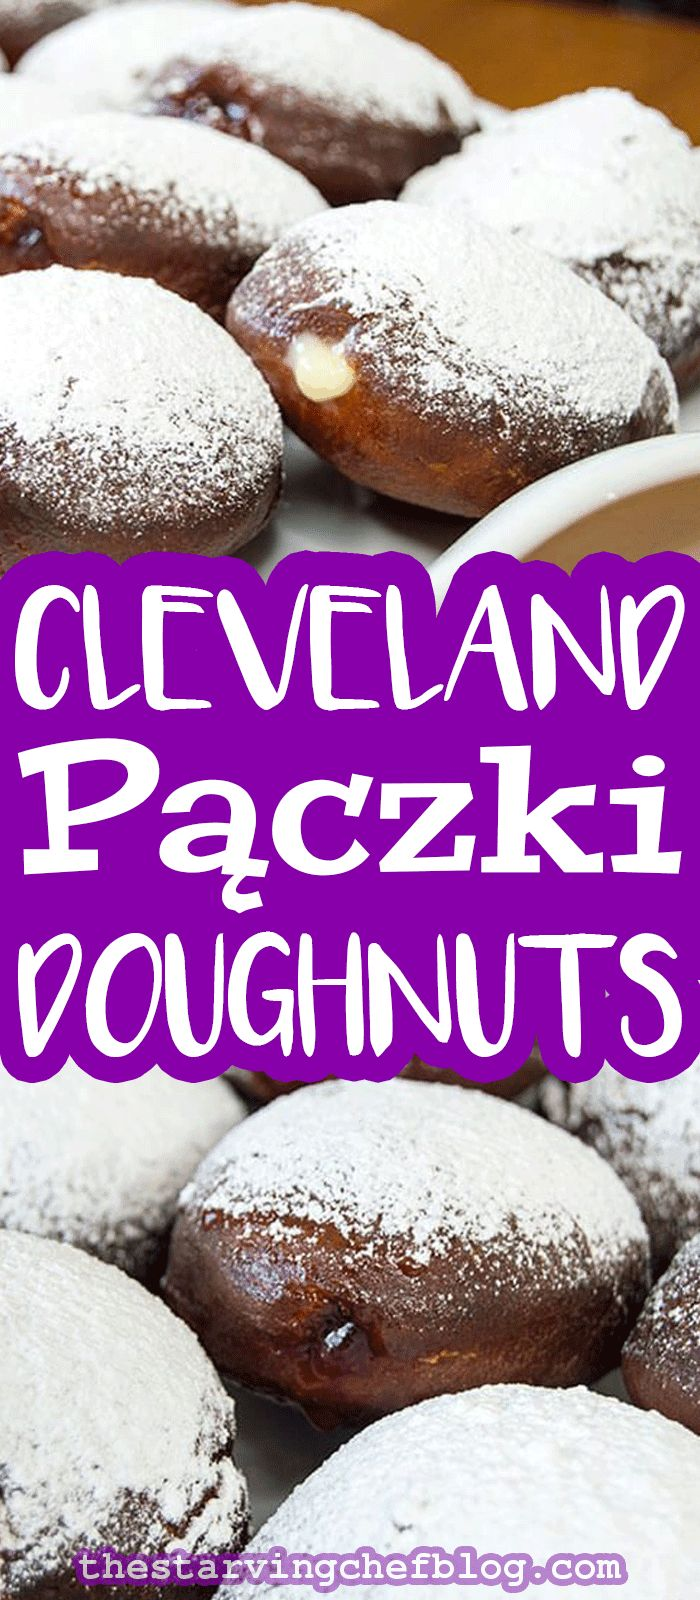 The Starving Chef | Polish pazcki, similar to the ones you'll find throughout the Midwest in cities like Cleveland, Chigcago and Detroit. It's PAZCKI DAY!